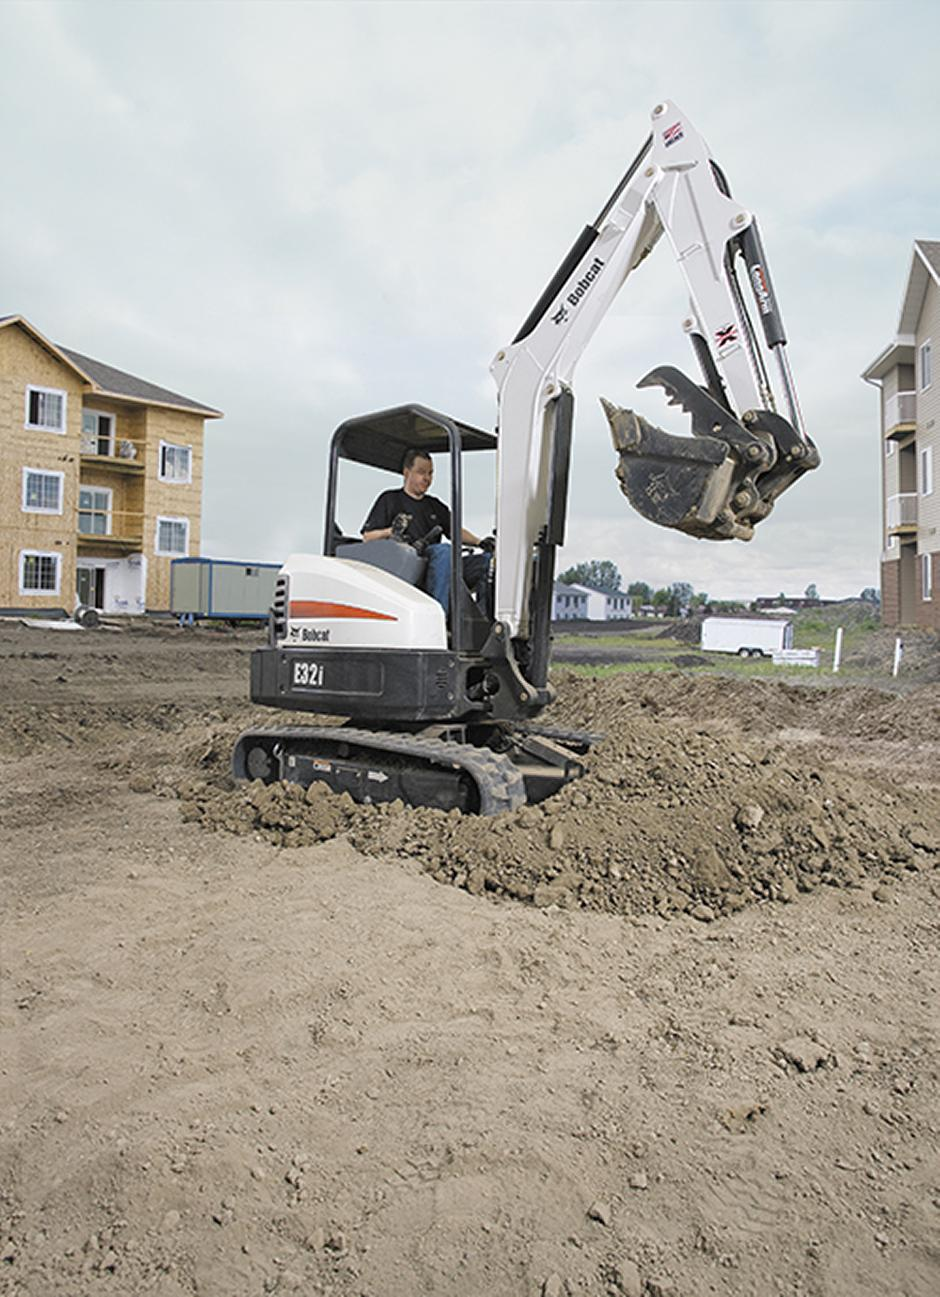 209132-e32_with_bucket_and_clamp-101029-47980-hr_mg_full